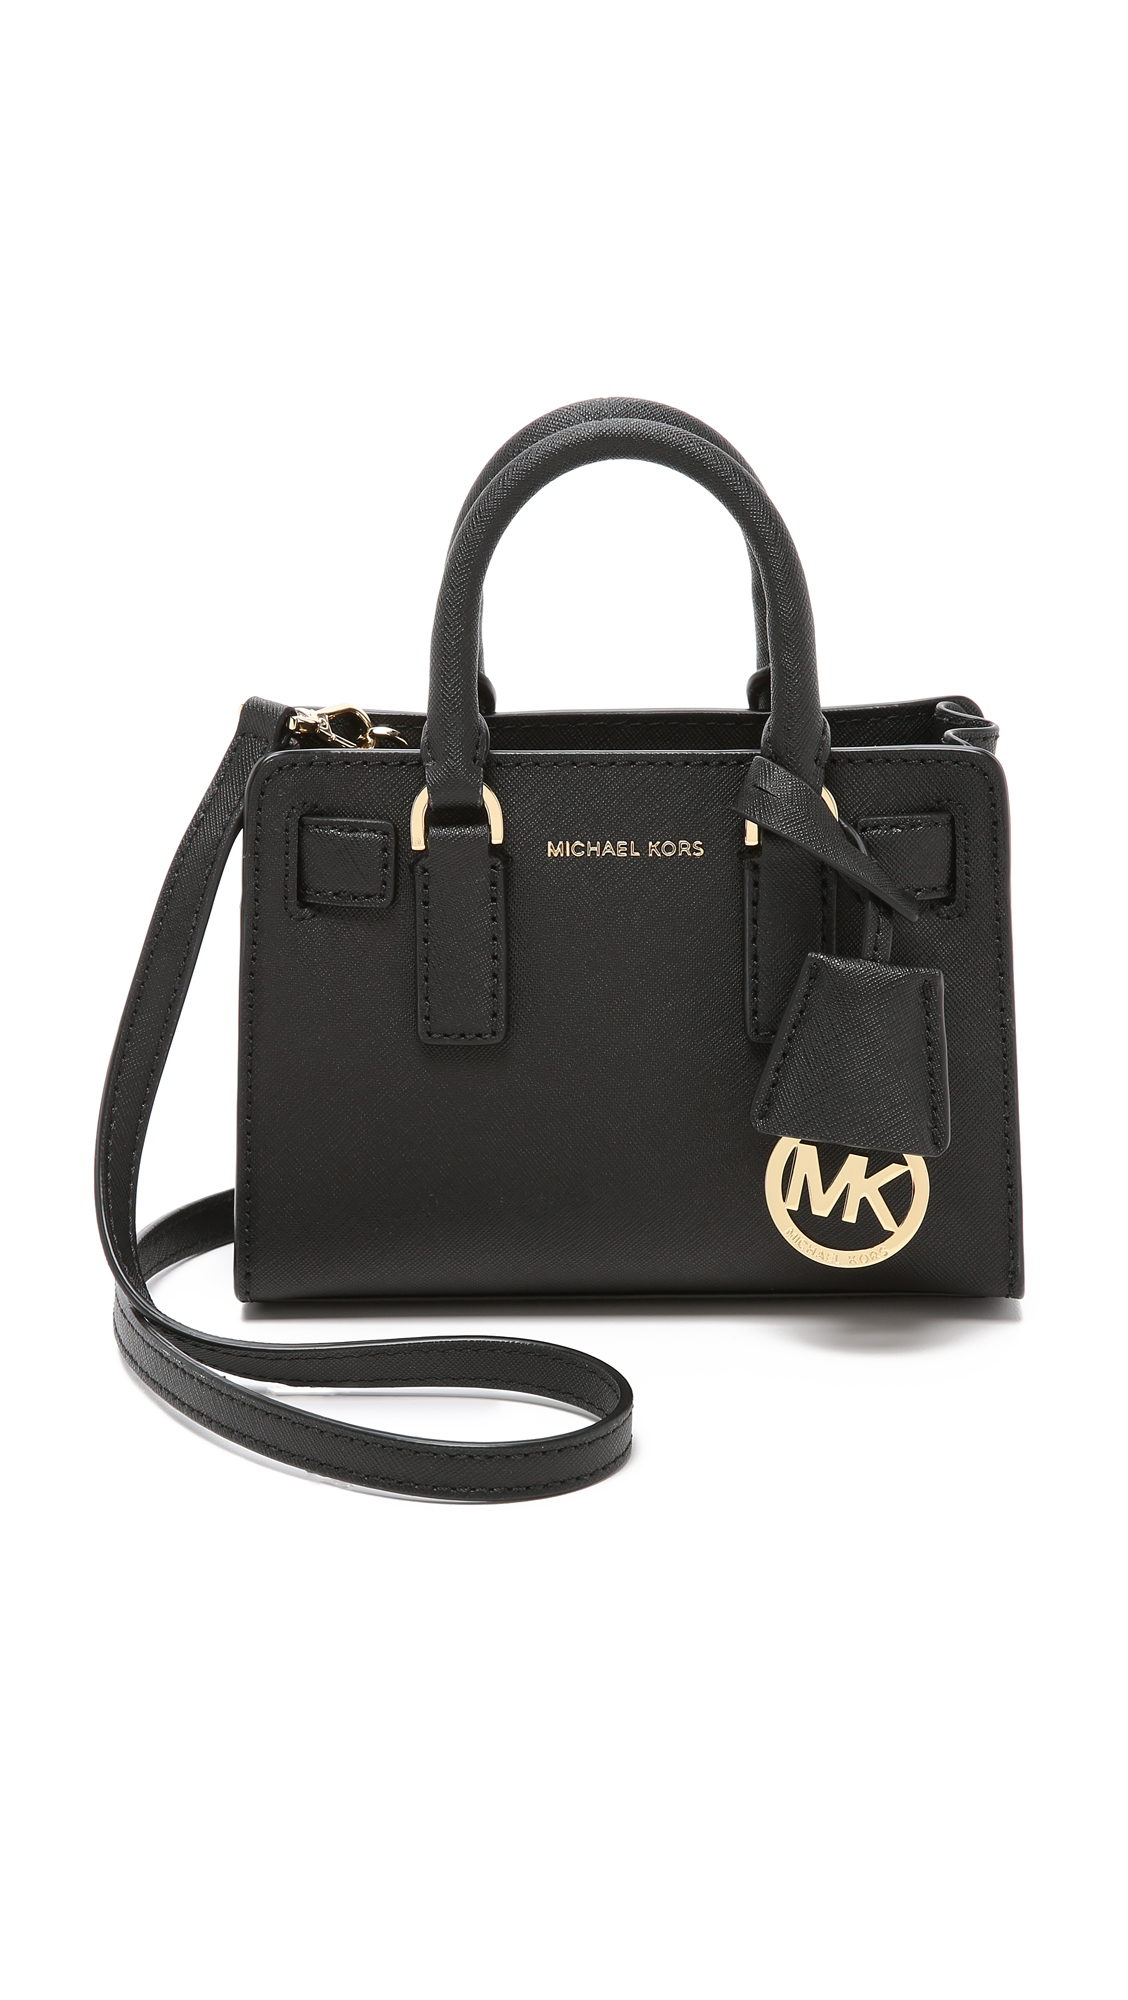 880f577c1f4b Gallery. Previously sold at: Shopbop · Women's Michael By Michael Kors ...